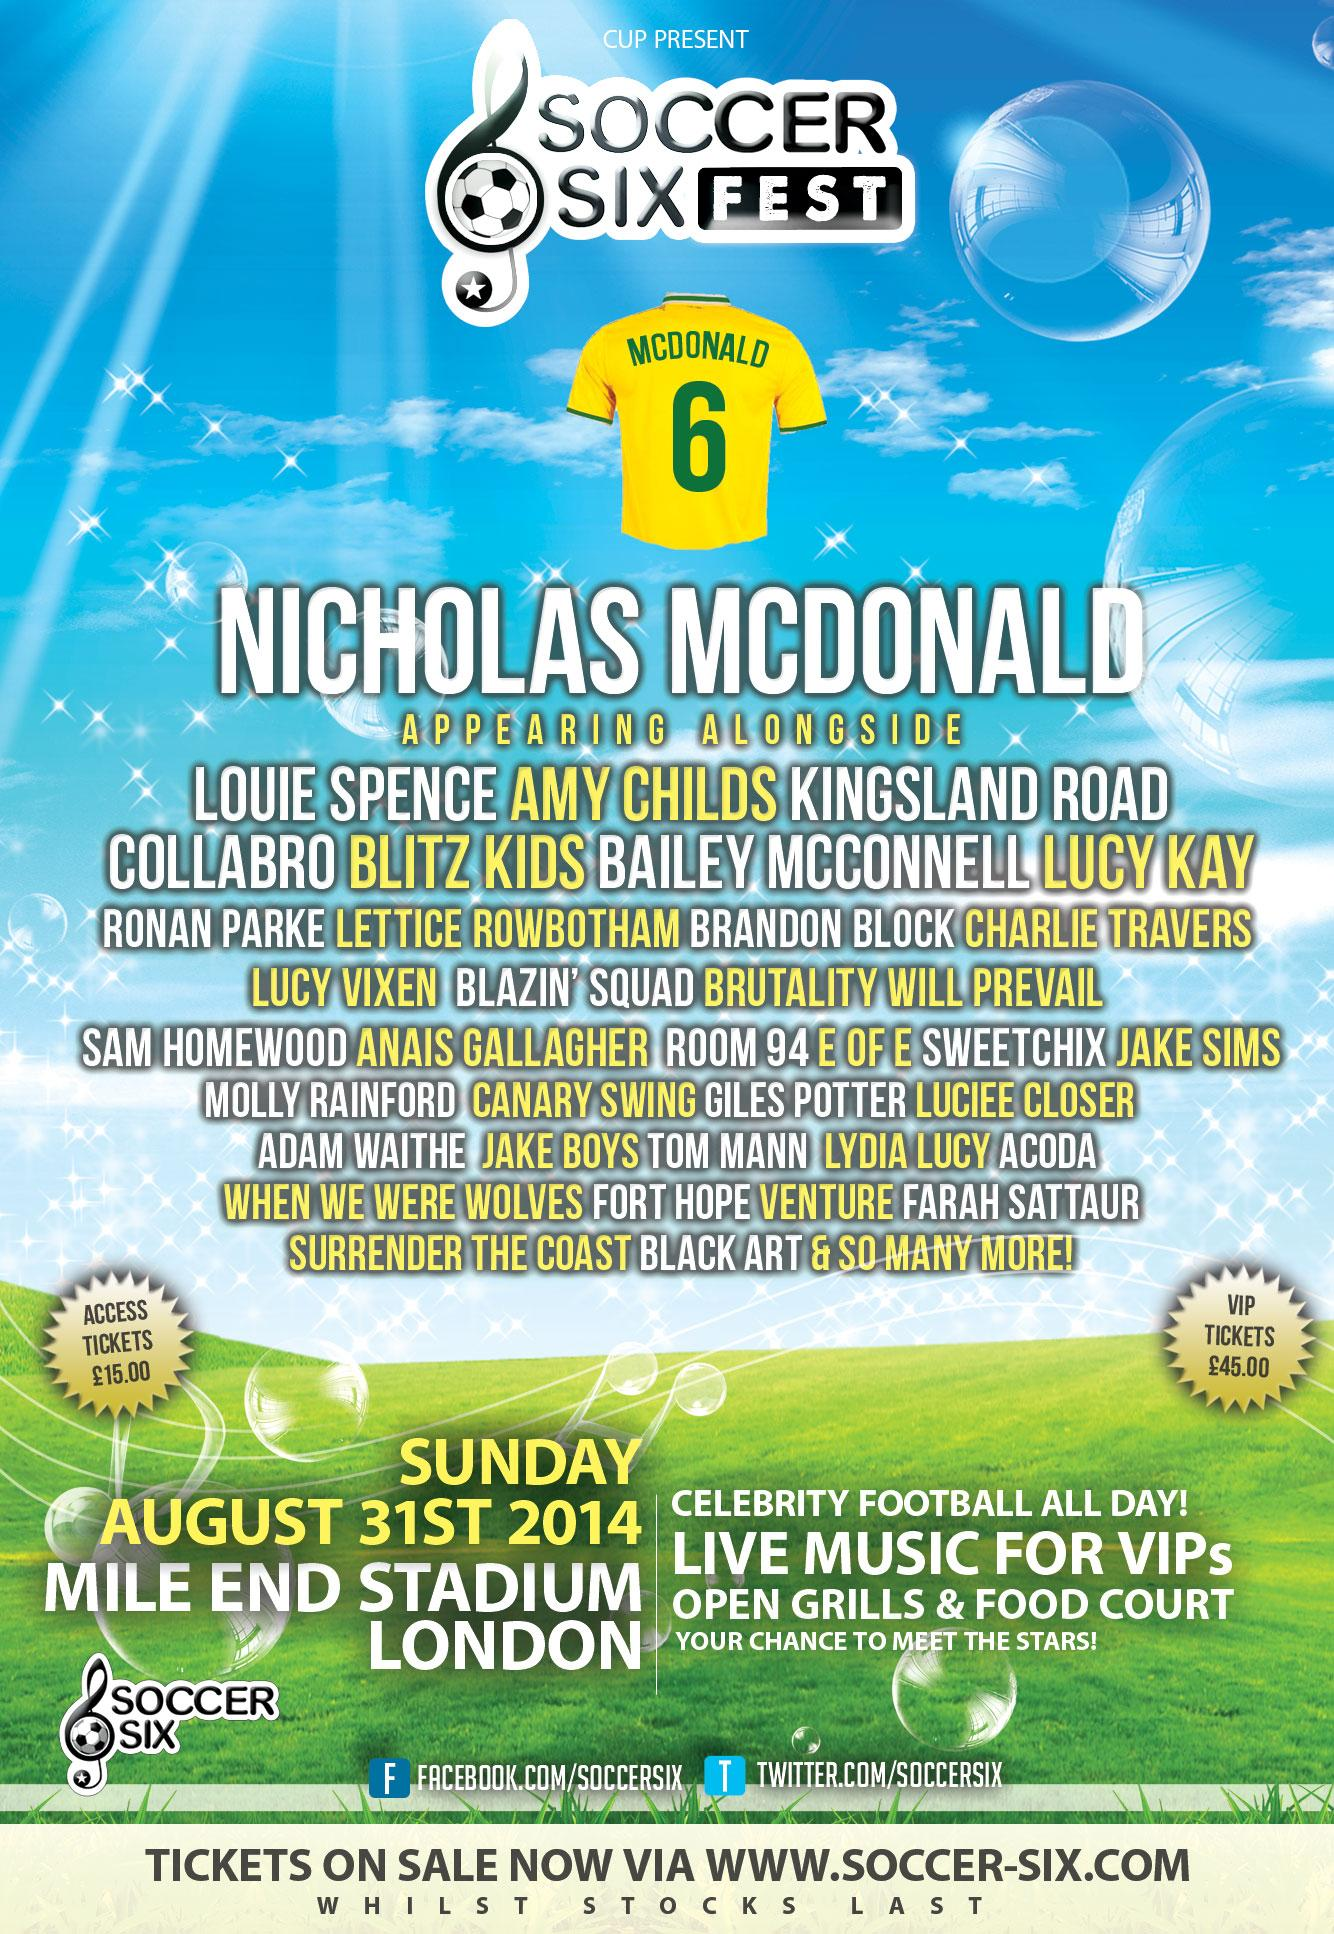 RT @SoccerSix: Grab your tickets NOW to see @nickymcdonald1 at #SoccerSixFest! Tickets: http://t.co/3EFtLsZB24 RT! http://t.co/pnvq3njaS0